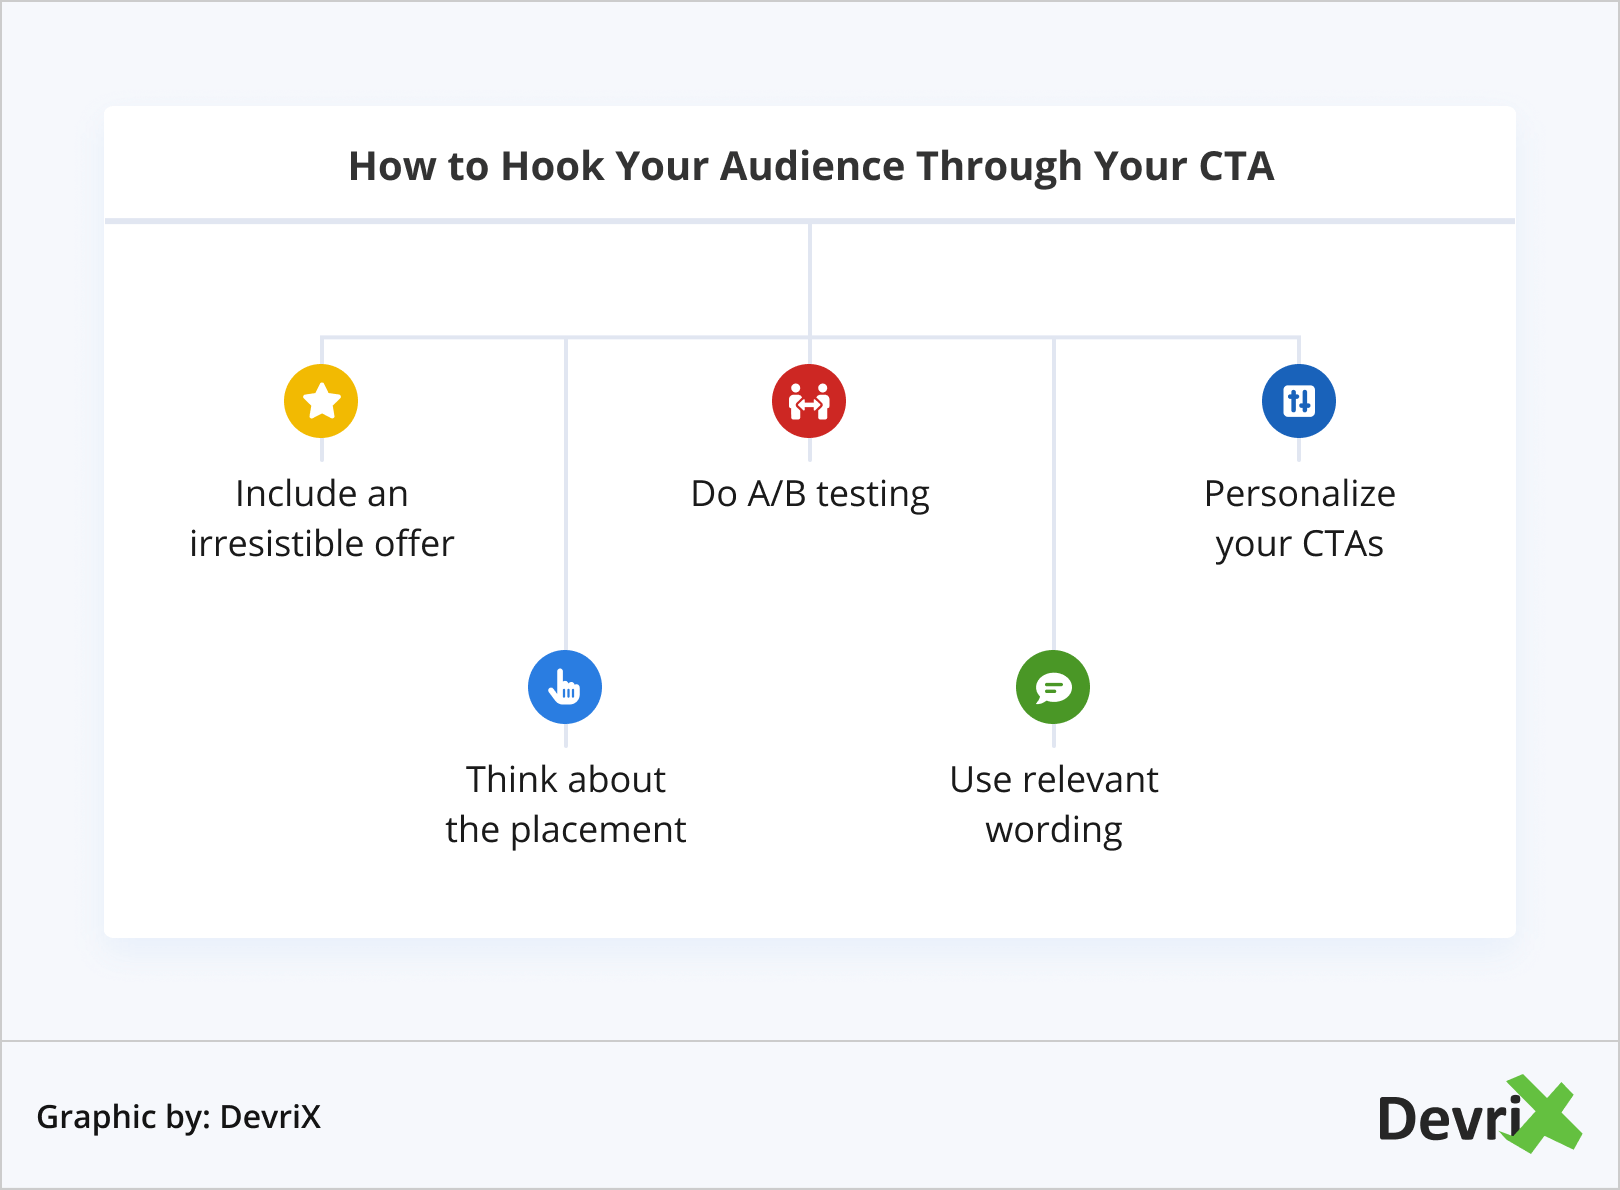 How to Hook Your Audience Through Your CTA